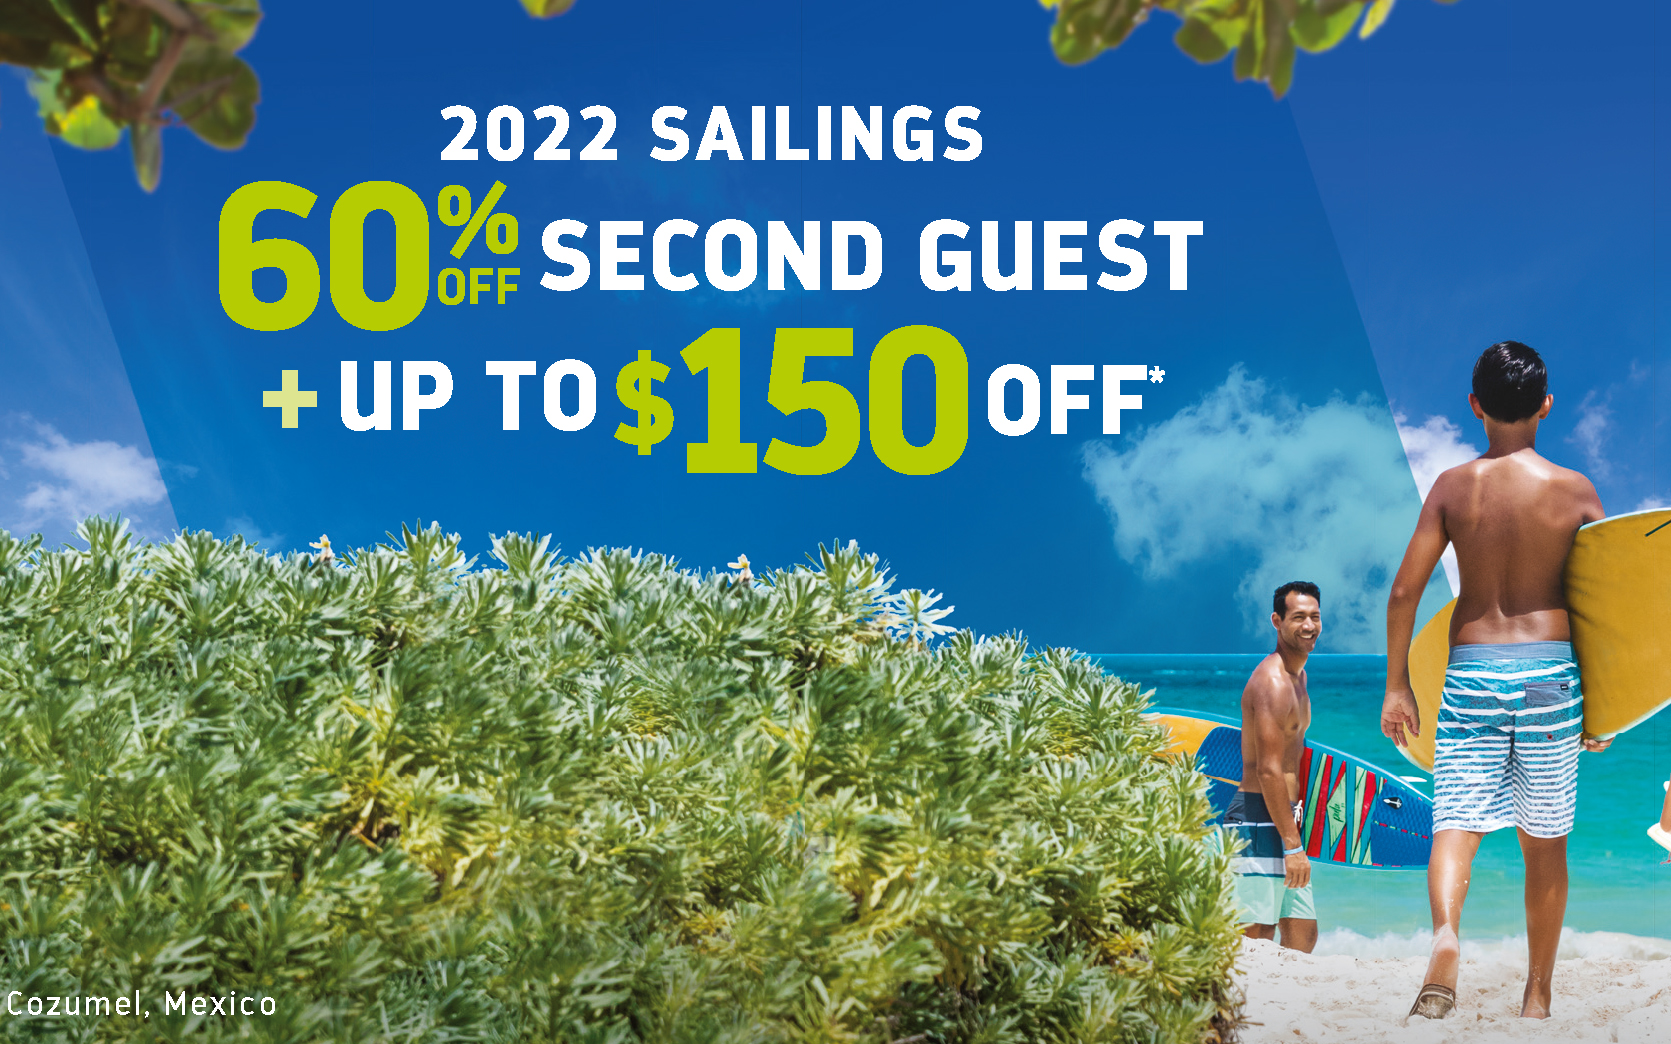 60% Off Second Guest + Up to $150 Off *   with Royal Caribbean